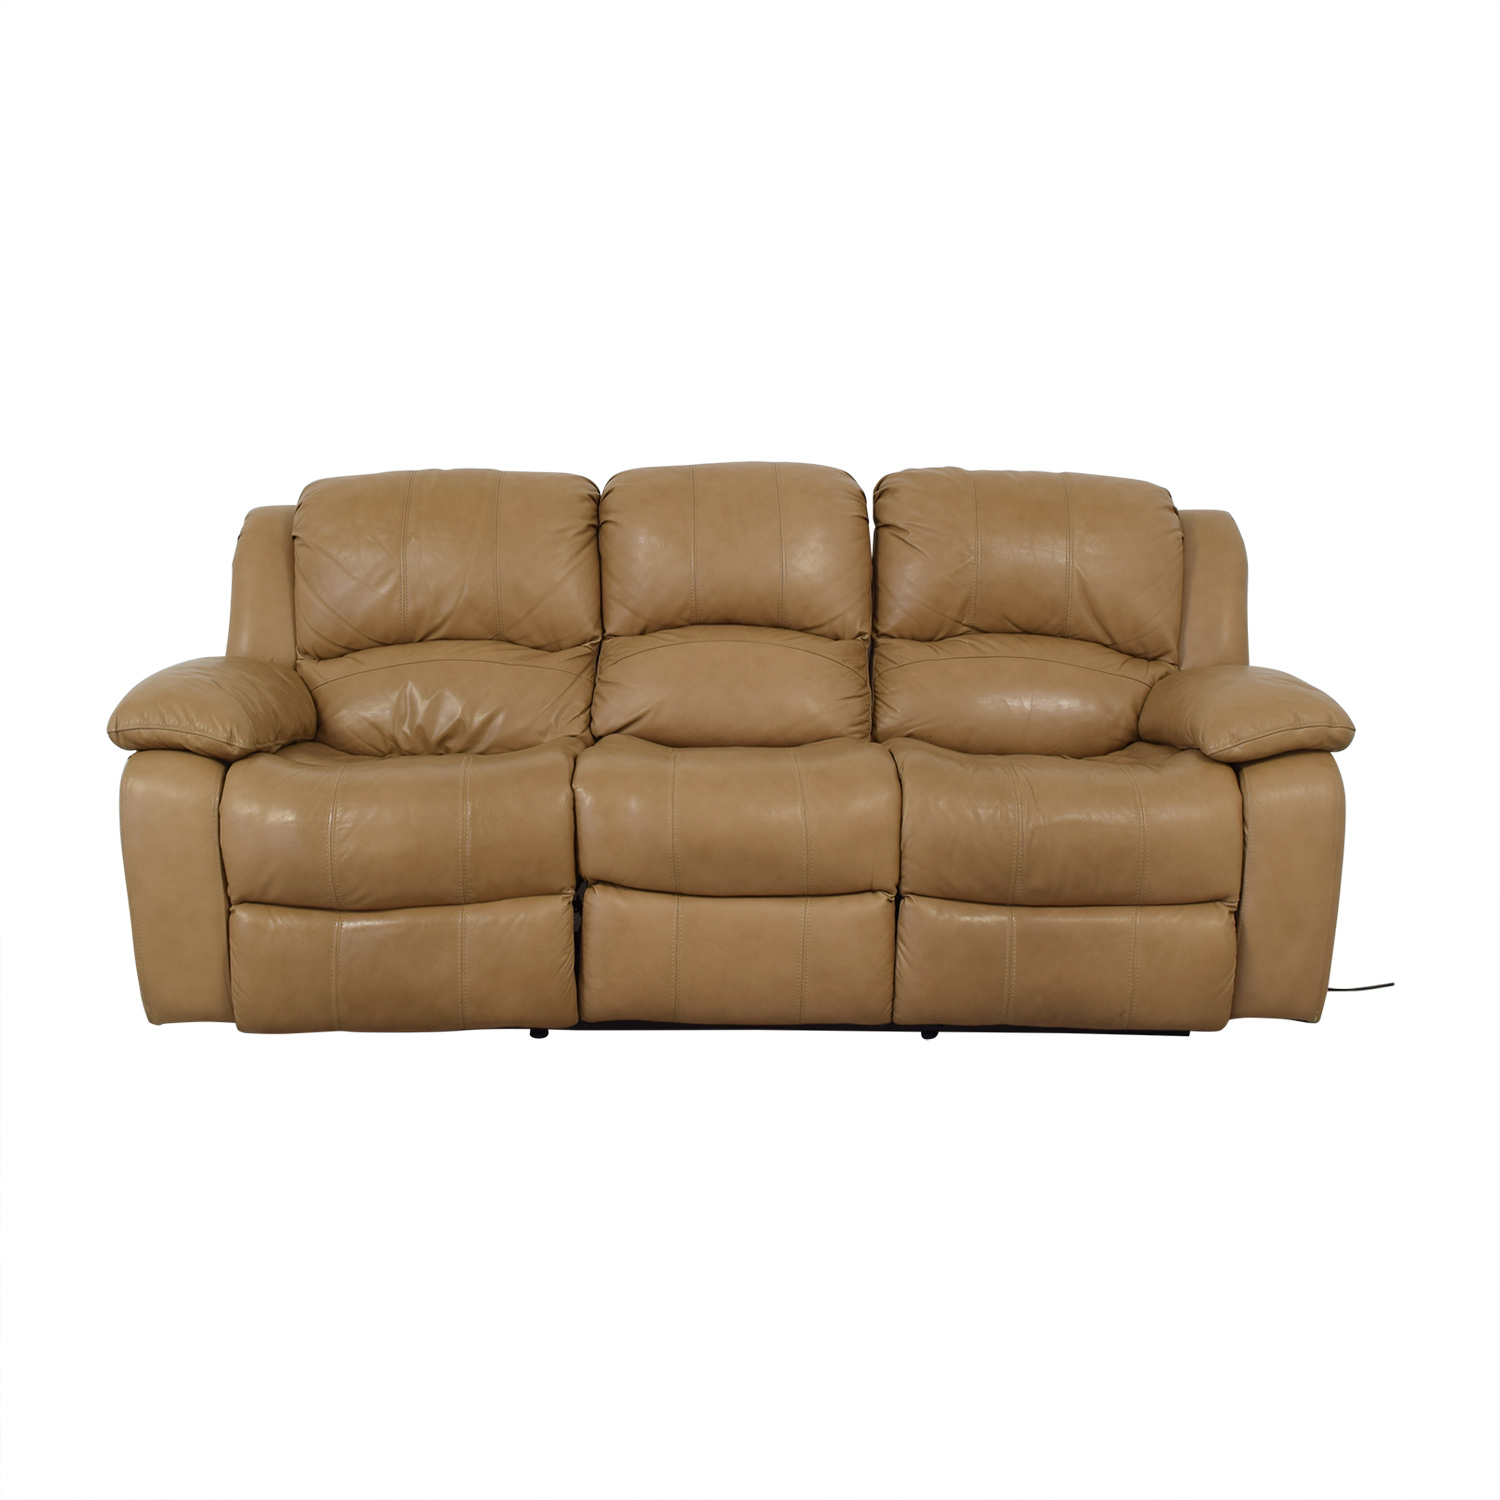 Raymour & Flanigan Bryant II Leather Power Reclining Sofa Raymour & Flanigan